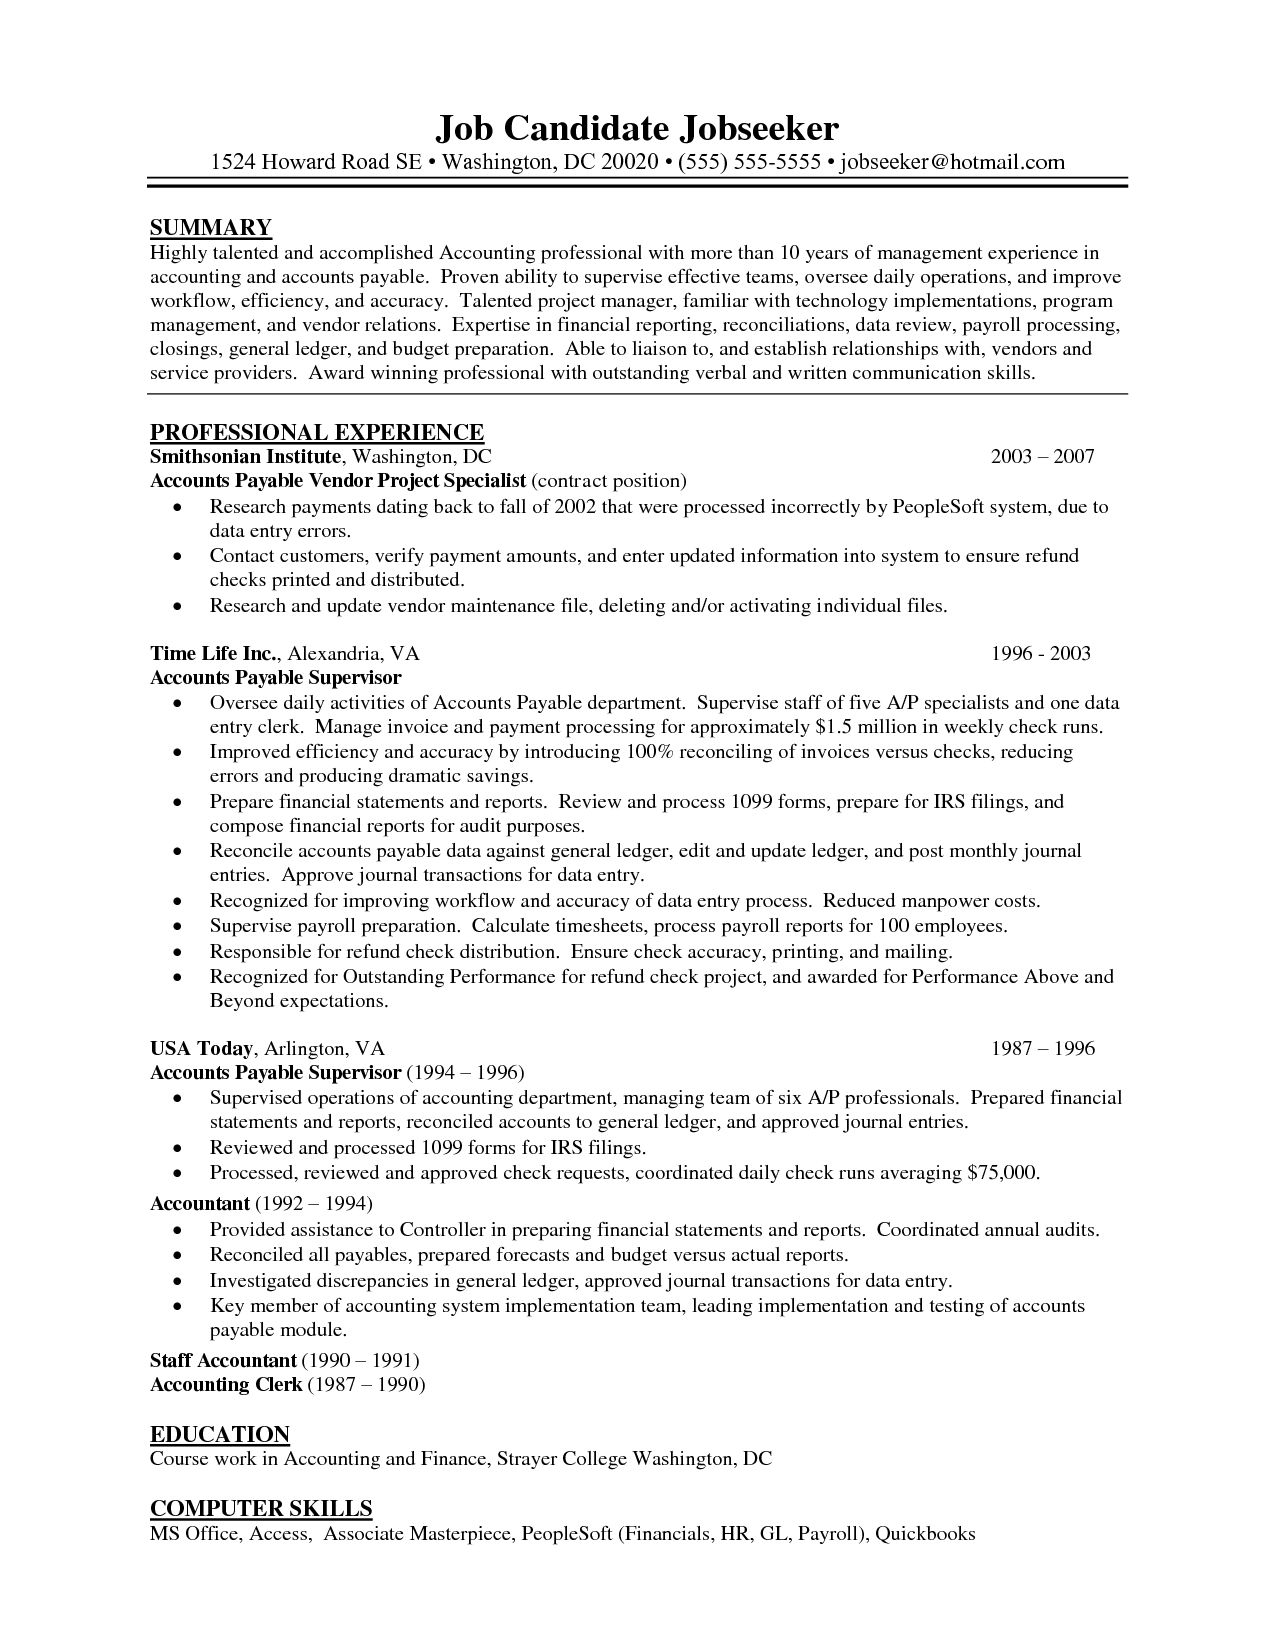 Accounts Payable And Receivable Resume Magnificent Resume Examples Accounts Payable  Pinterest  Resume Examples